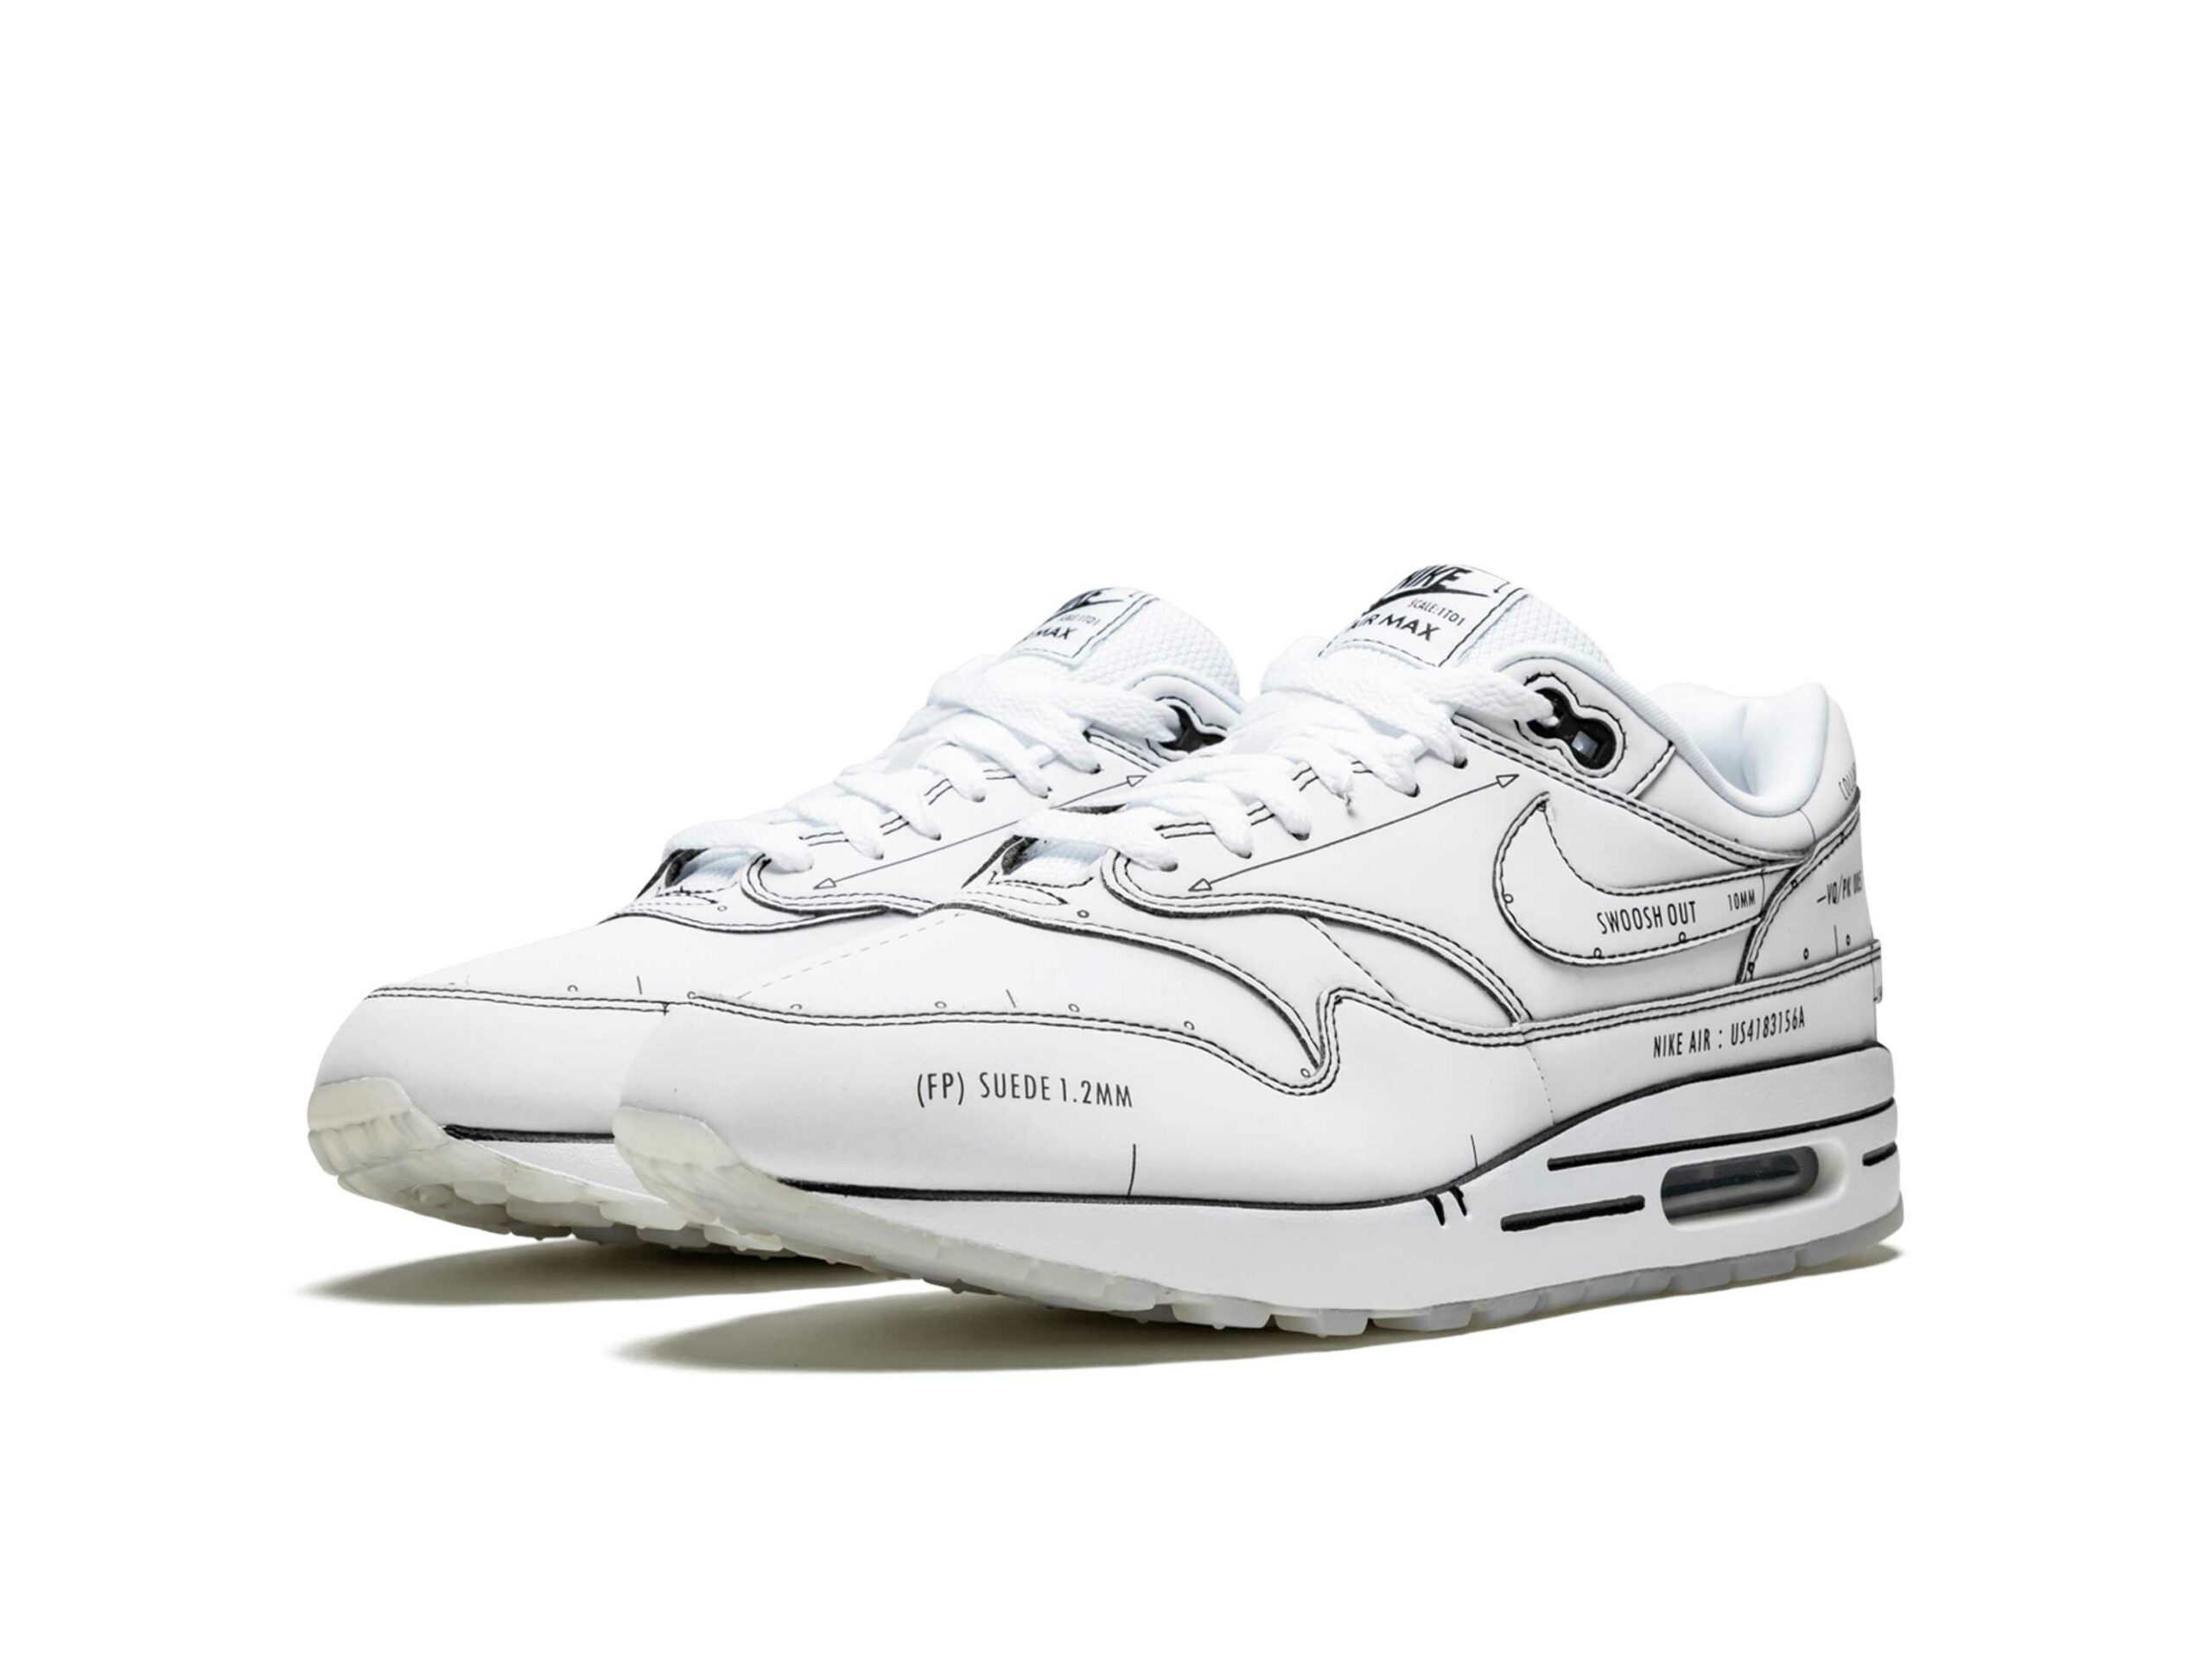 nike air max 1 sketch schematic CJ4286_100 купить